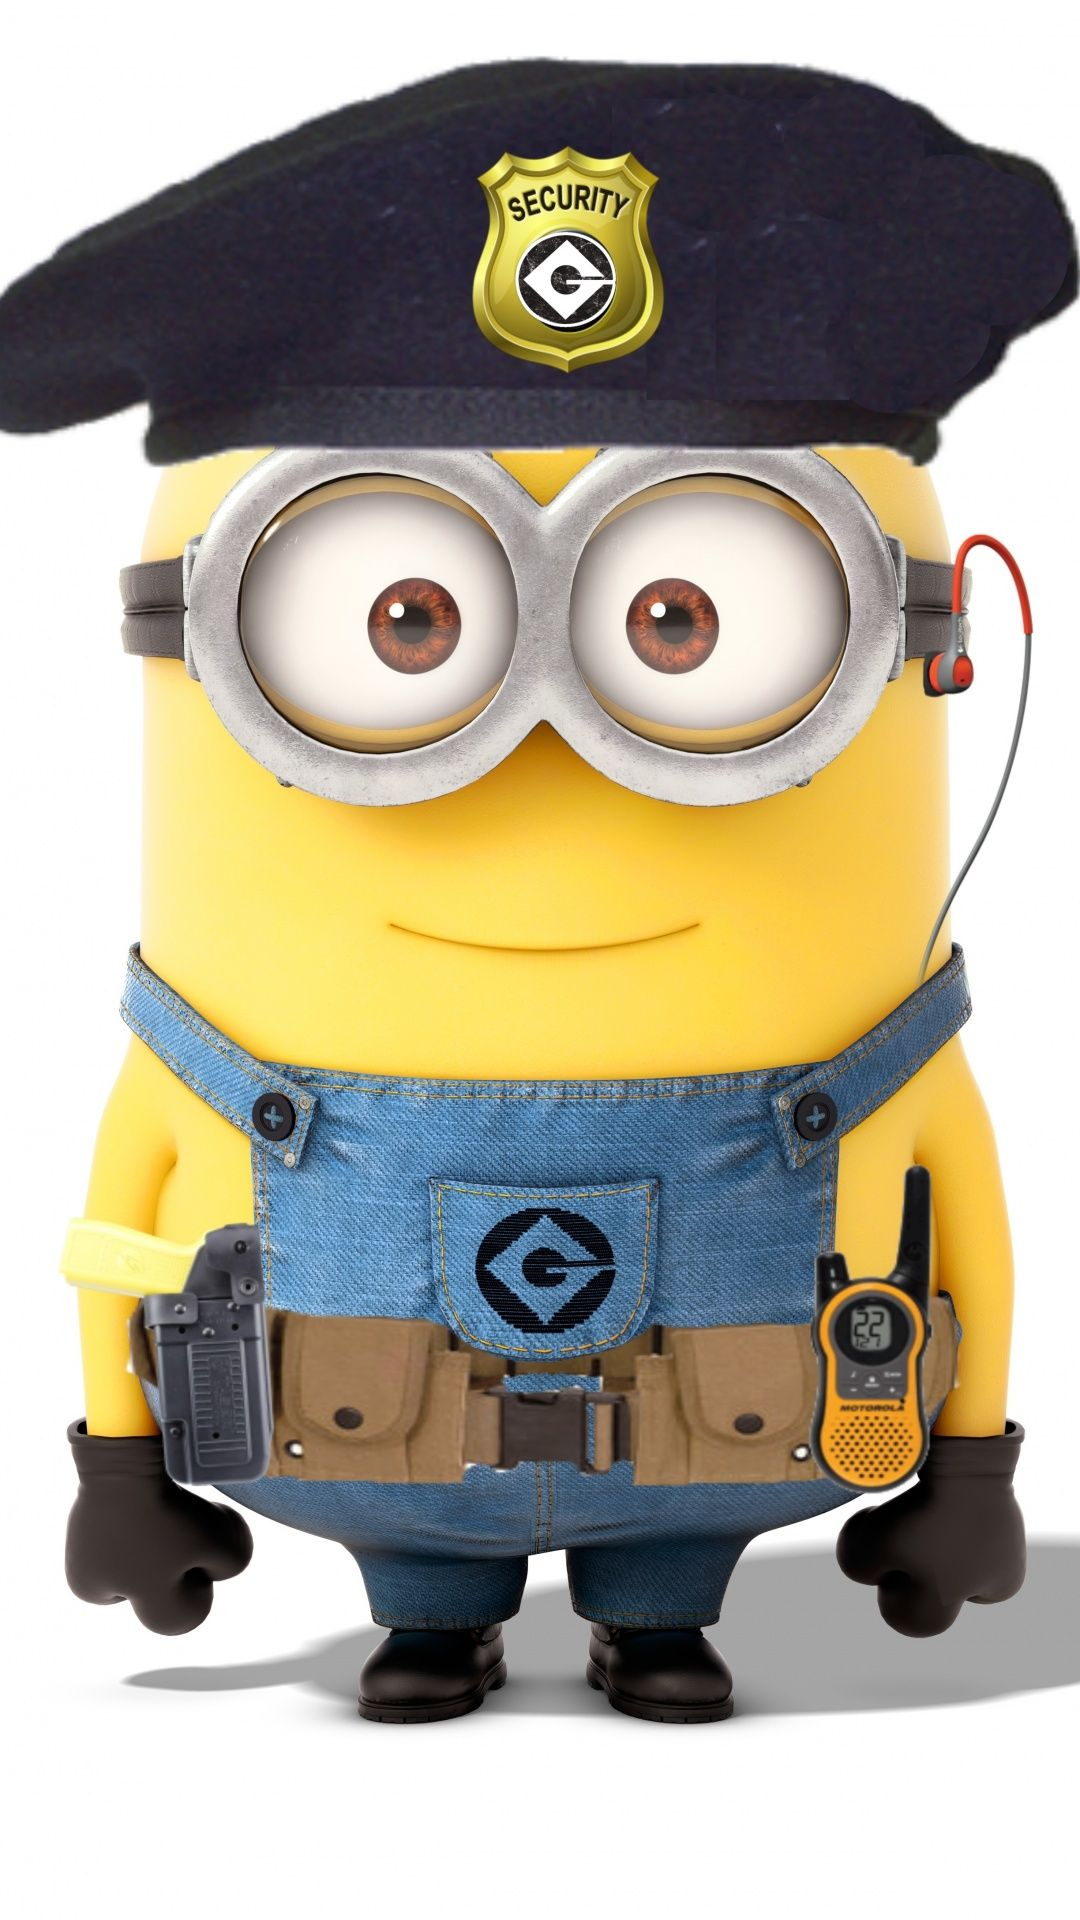 Image Result For Minion Image Minions Images Minions Minions